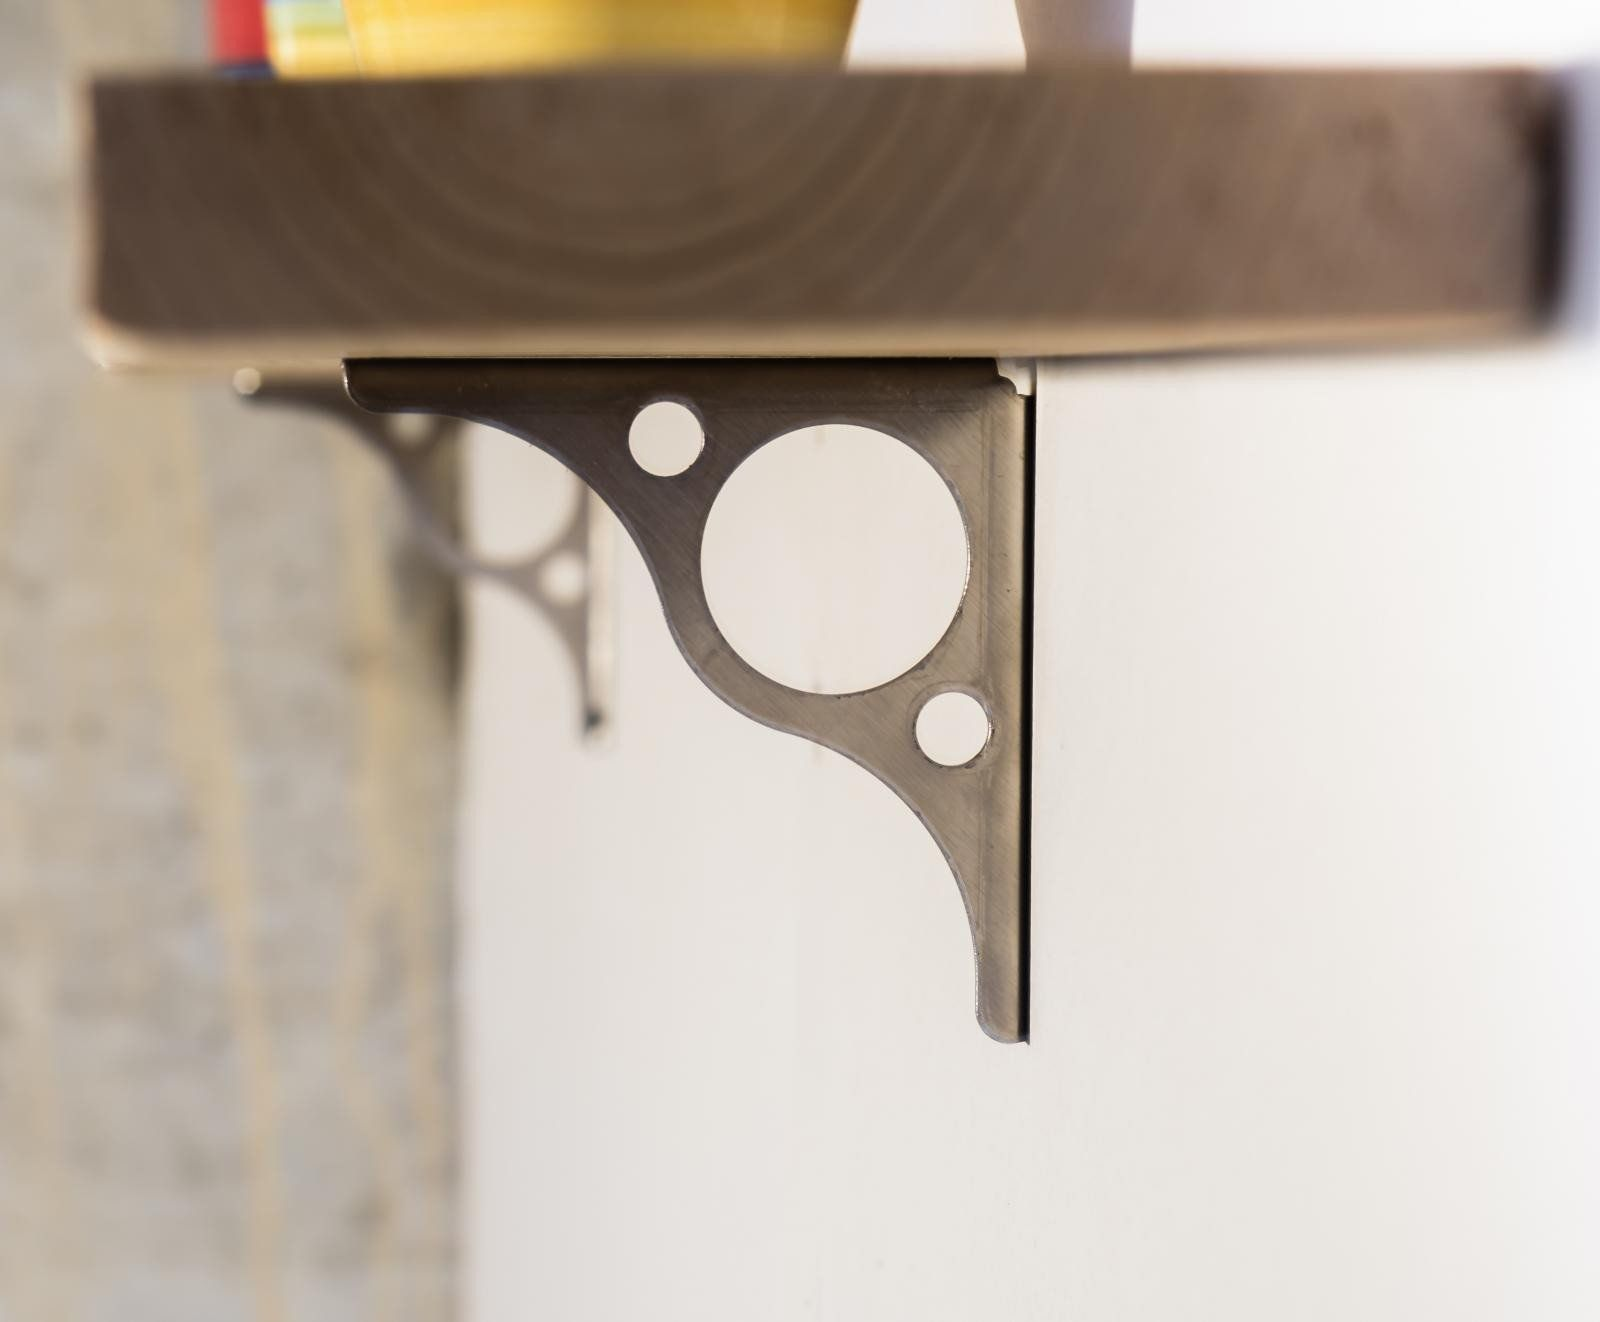 APEX Stainless Steel Shelf Brackets in 2019 | Apartment renovation